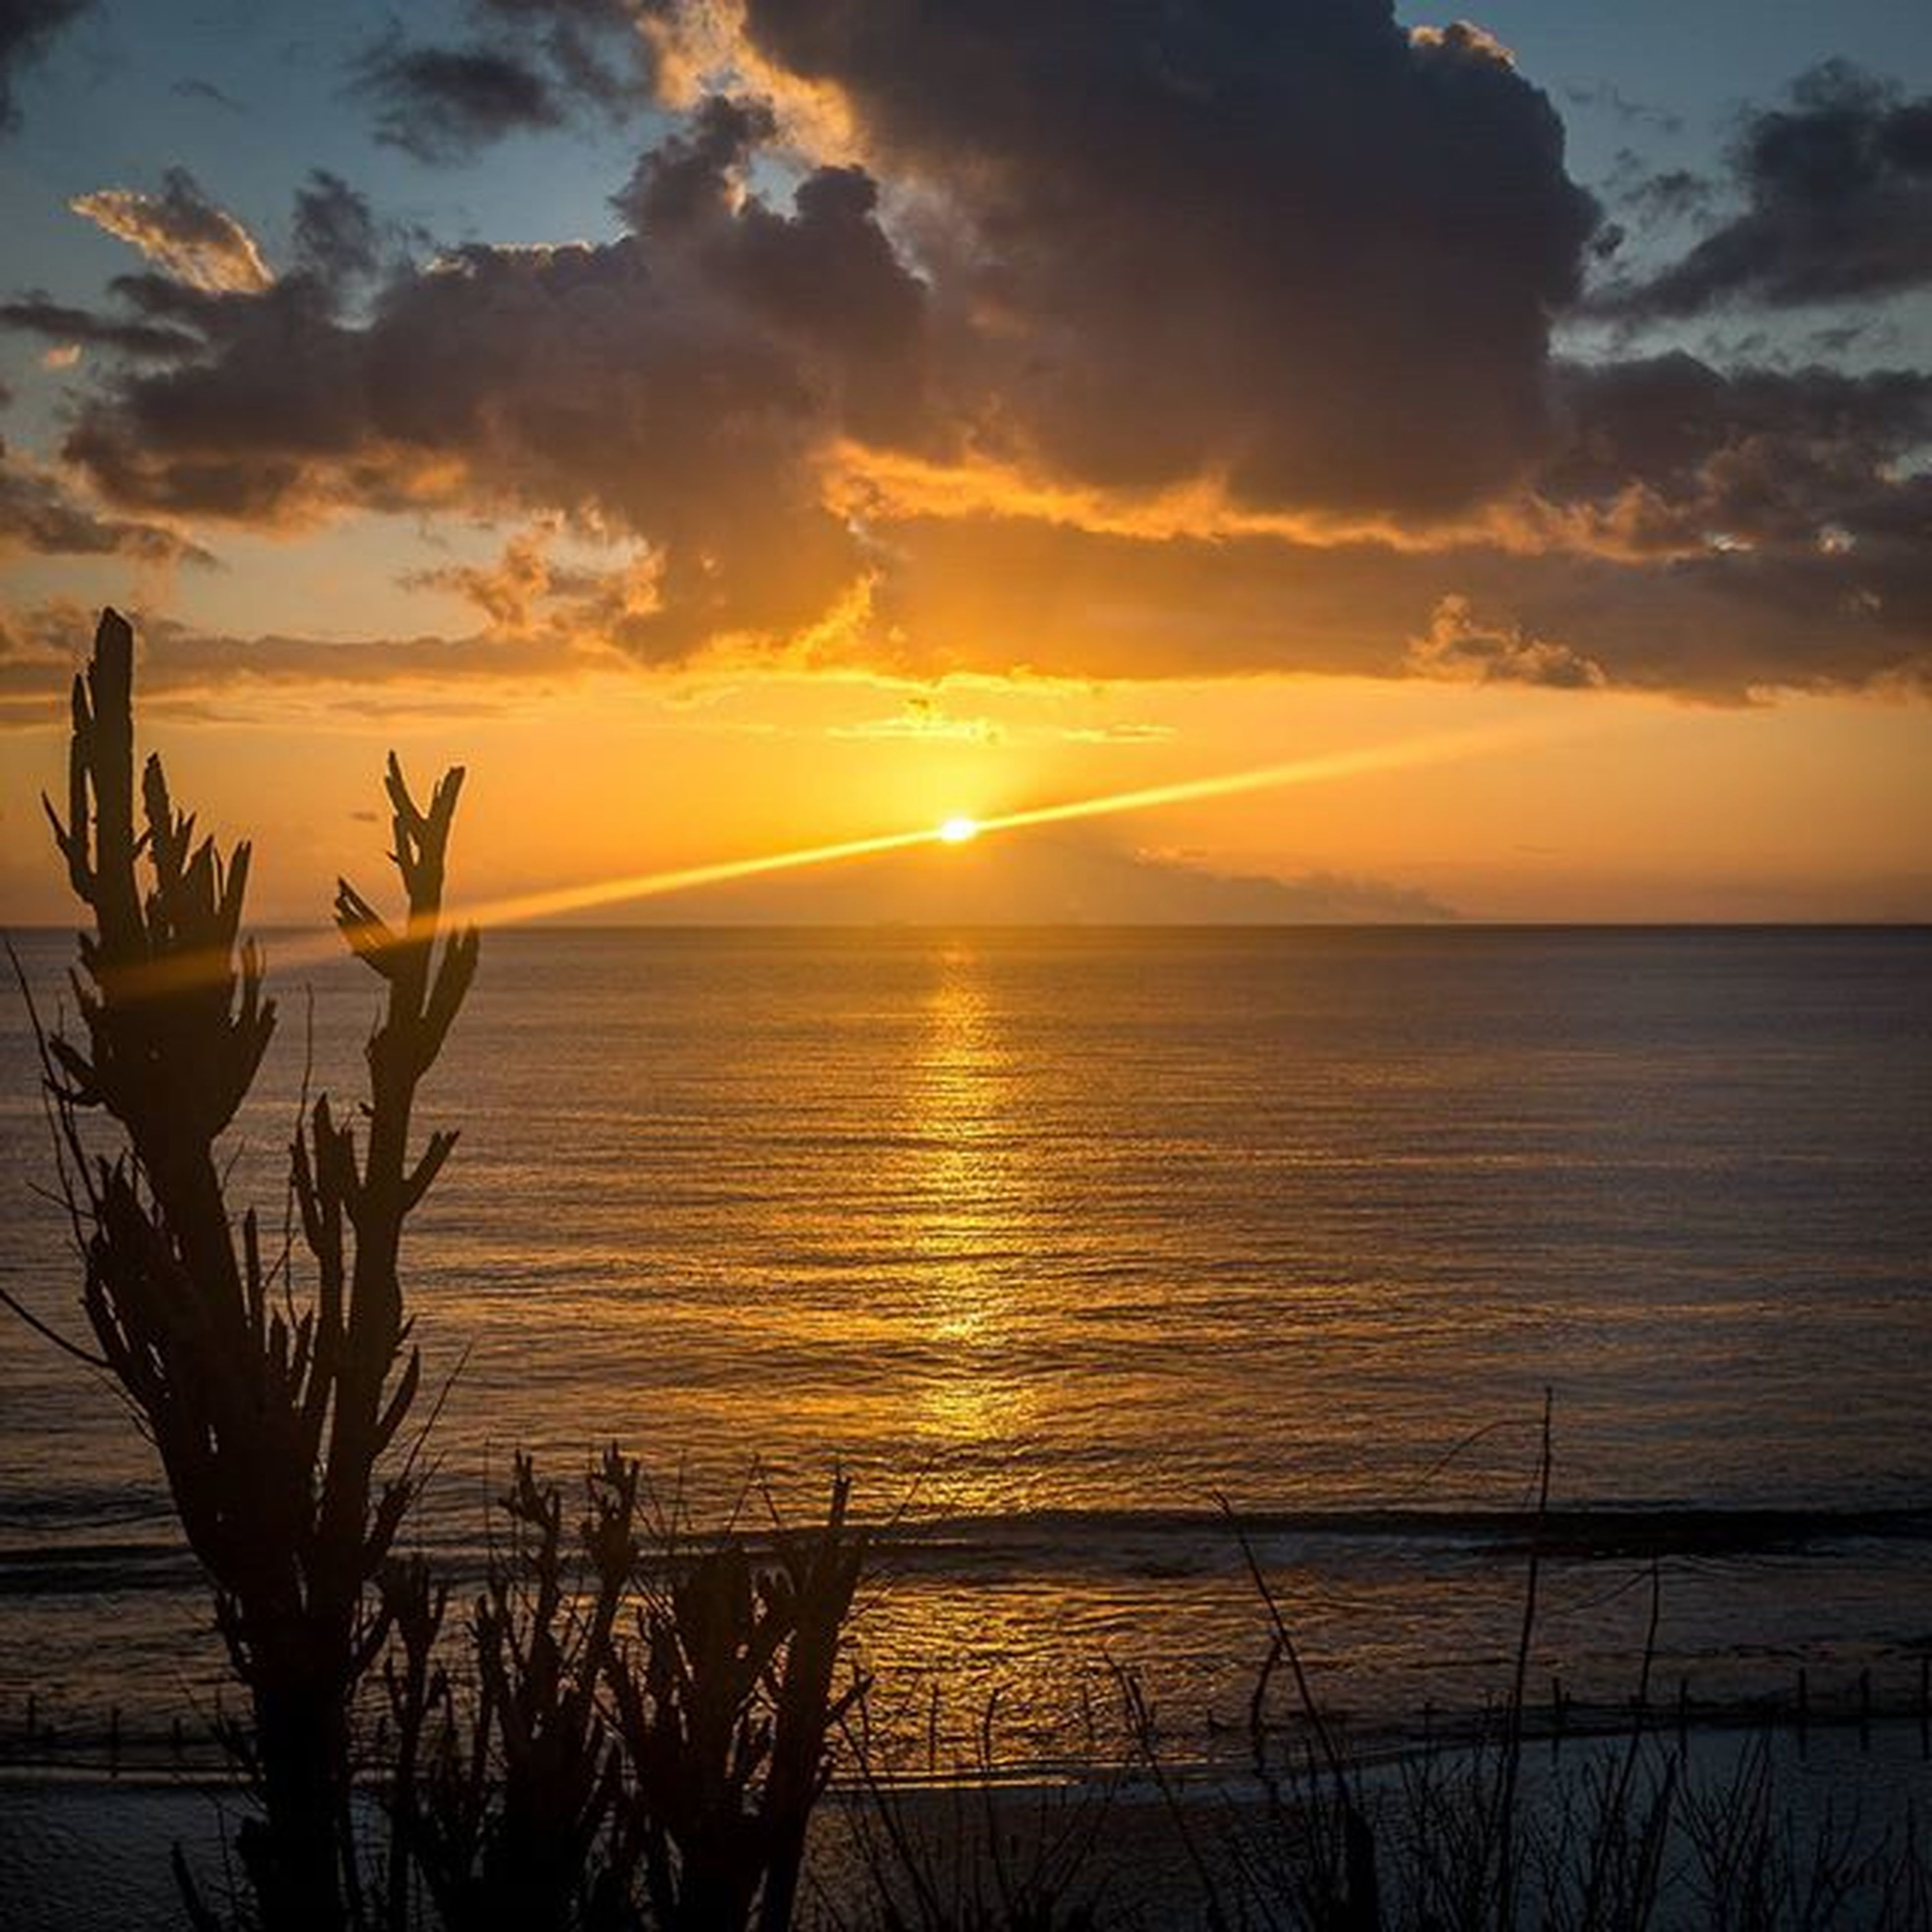 sunset, horizon over water, water, sea, sky, scenics, beauty in nature, tranquil scene, sun, orange color, tranquility, nature, cloud - sky, idyllic, reflection, silhouette, cloud, beach, sunlight, plant